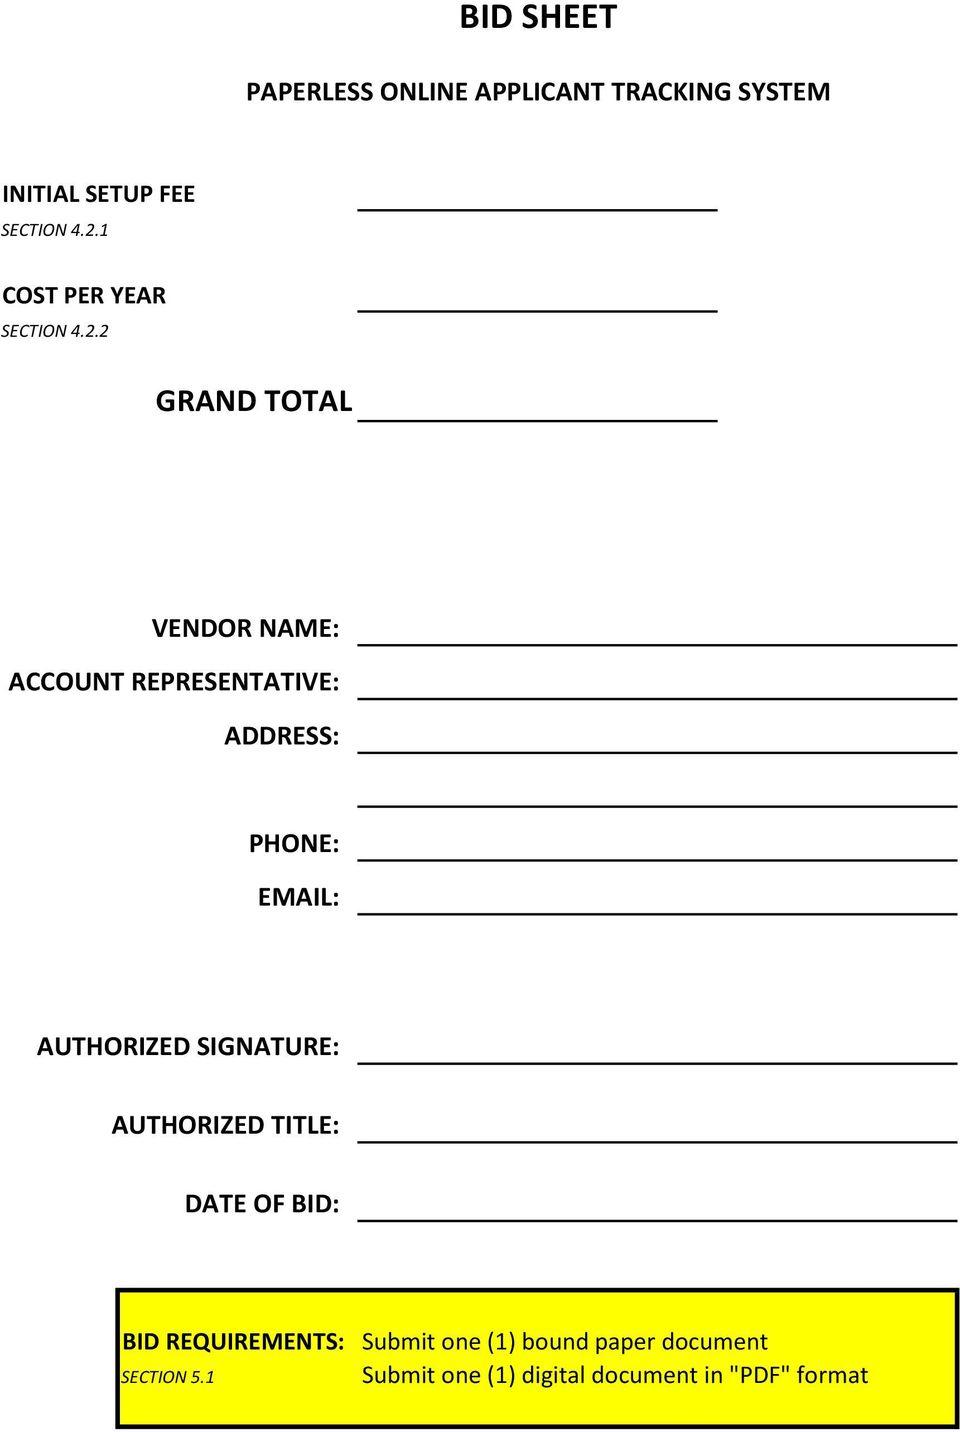 2 GRAND TOTAL VENDOR NAME: ACCOUNT REPRESENTATIVE: ADDRESS: PHONE: EMAIL: AUTHORIZED